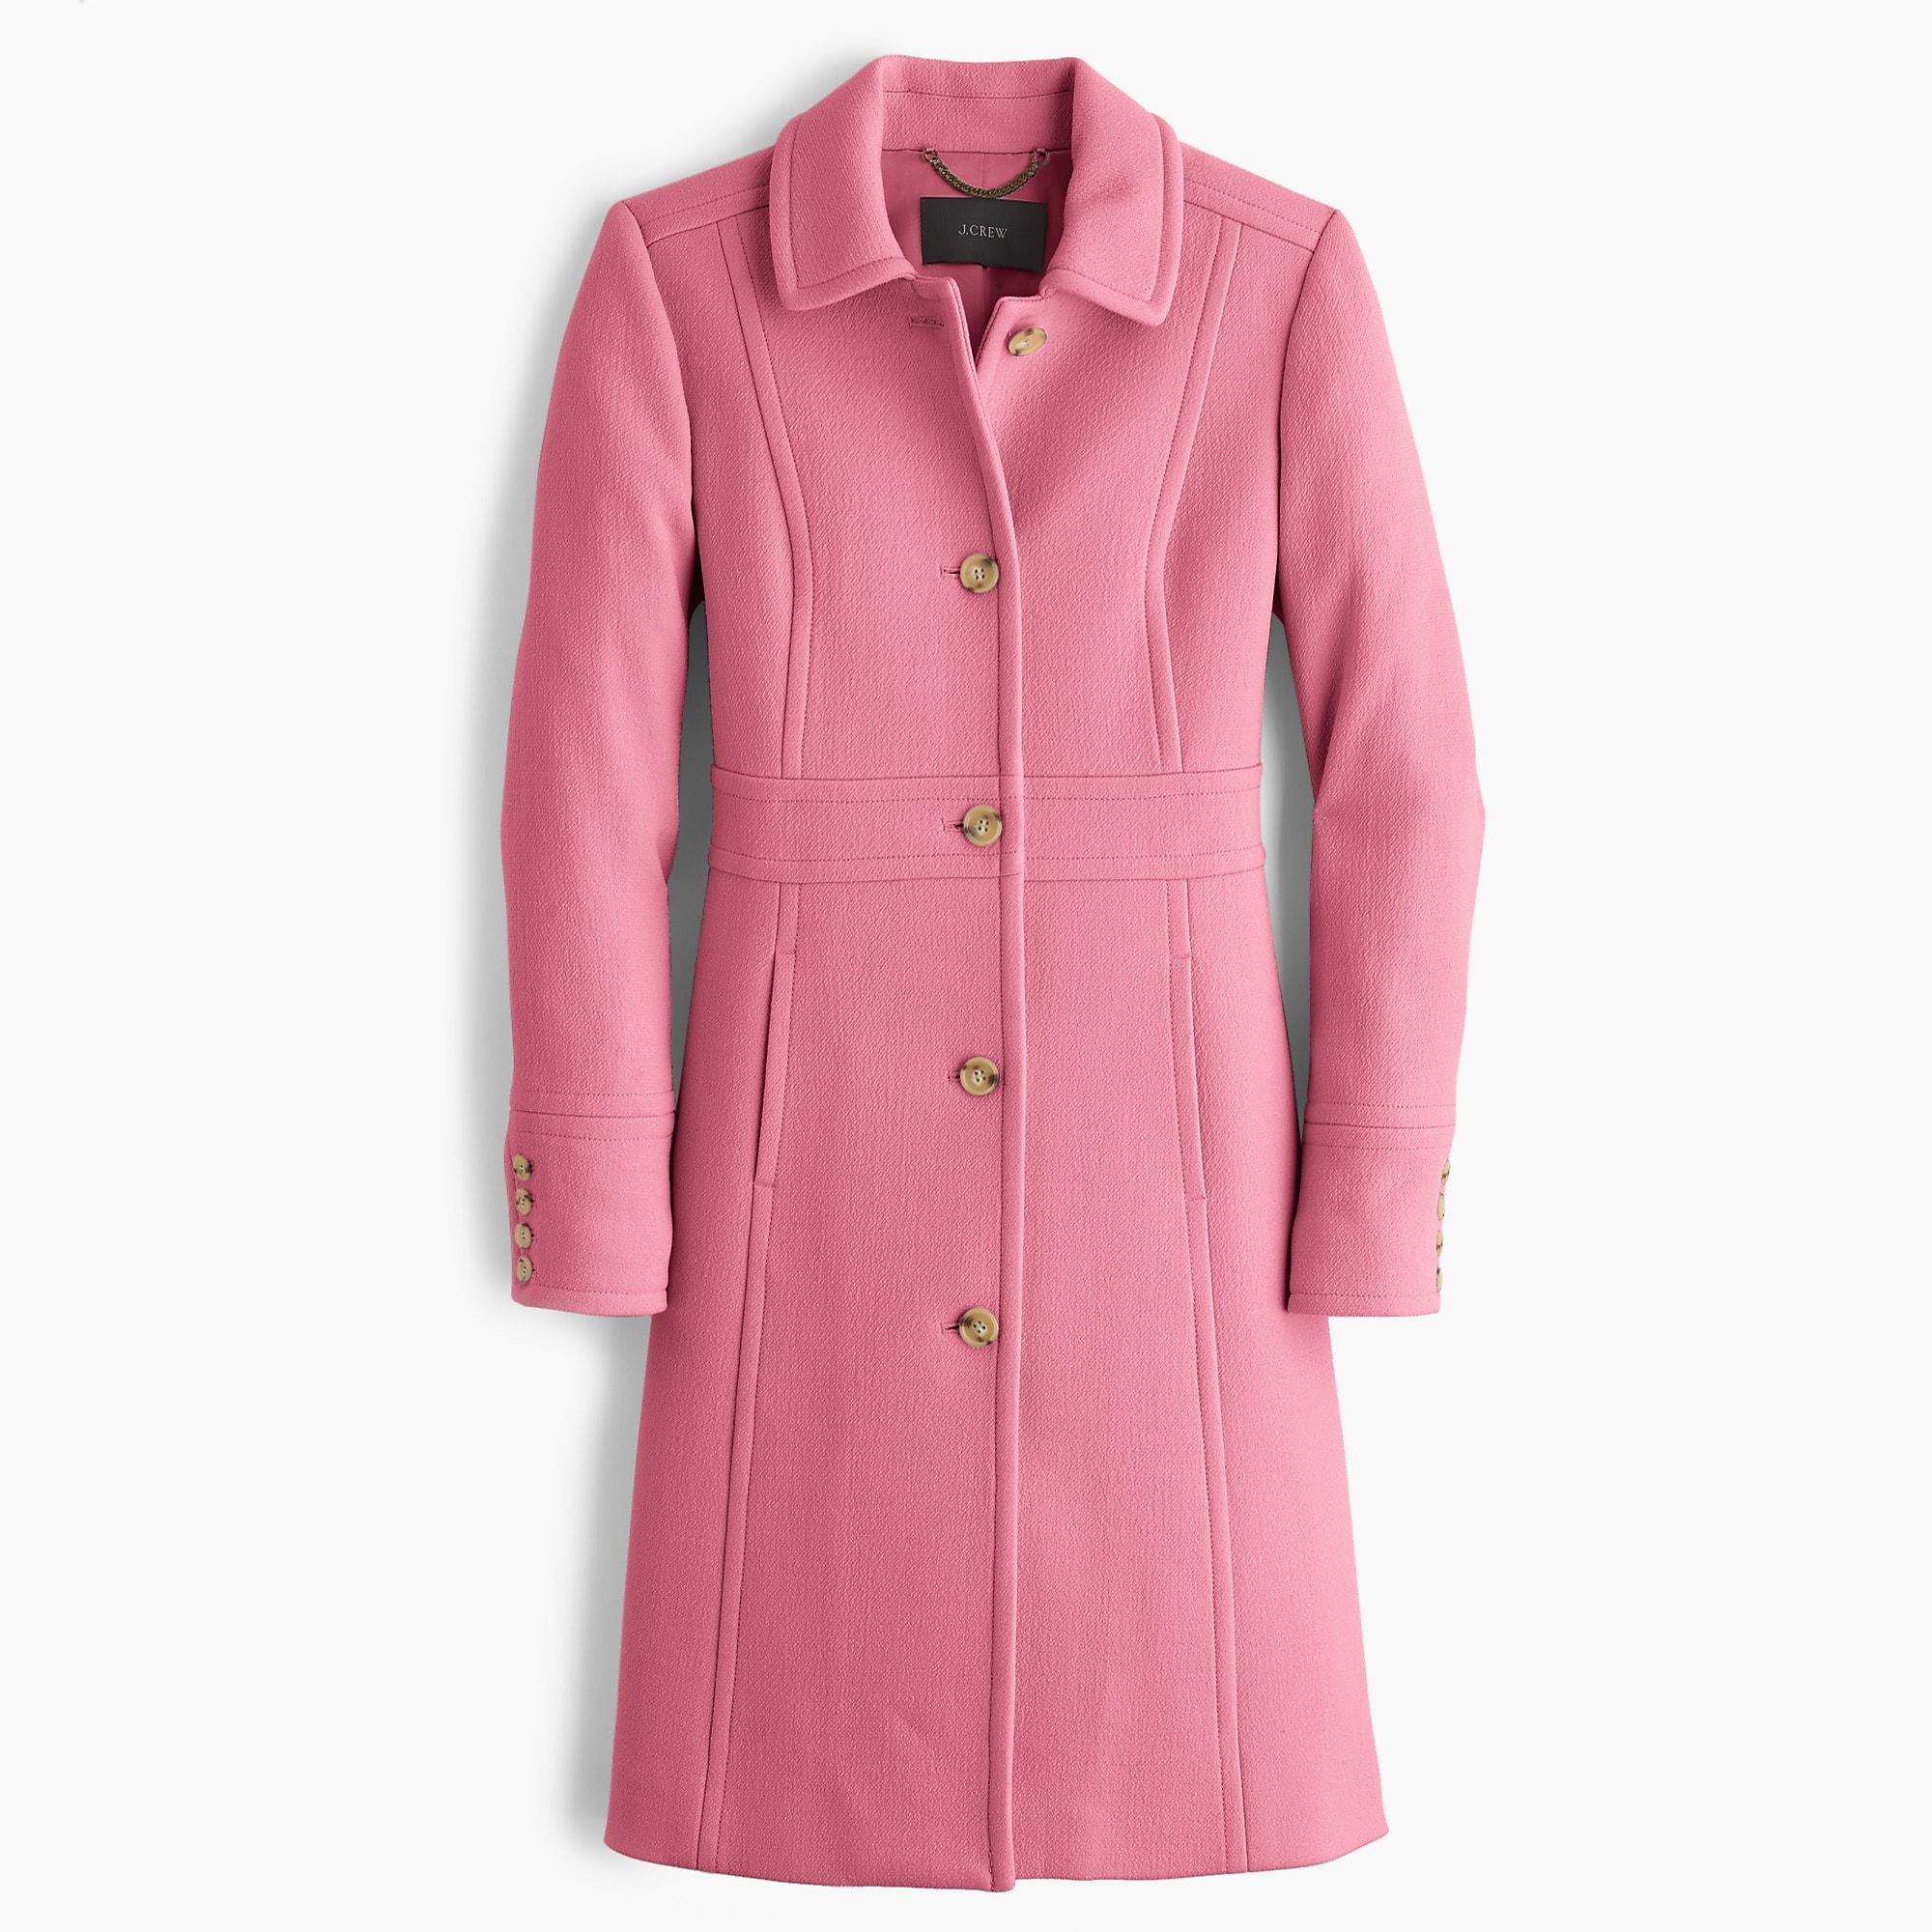 894373fa9 J.Crew Italian Double-cloth Wool Lady Day Coat With Thinsulate in ...